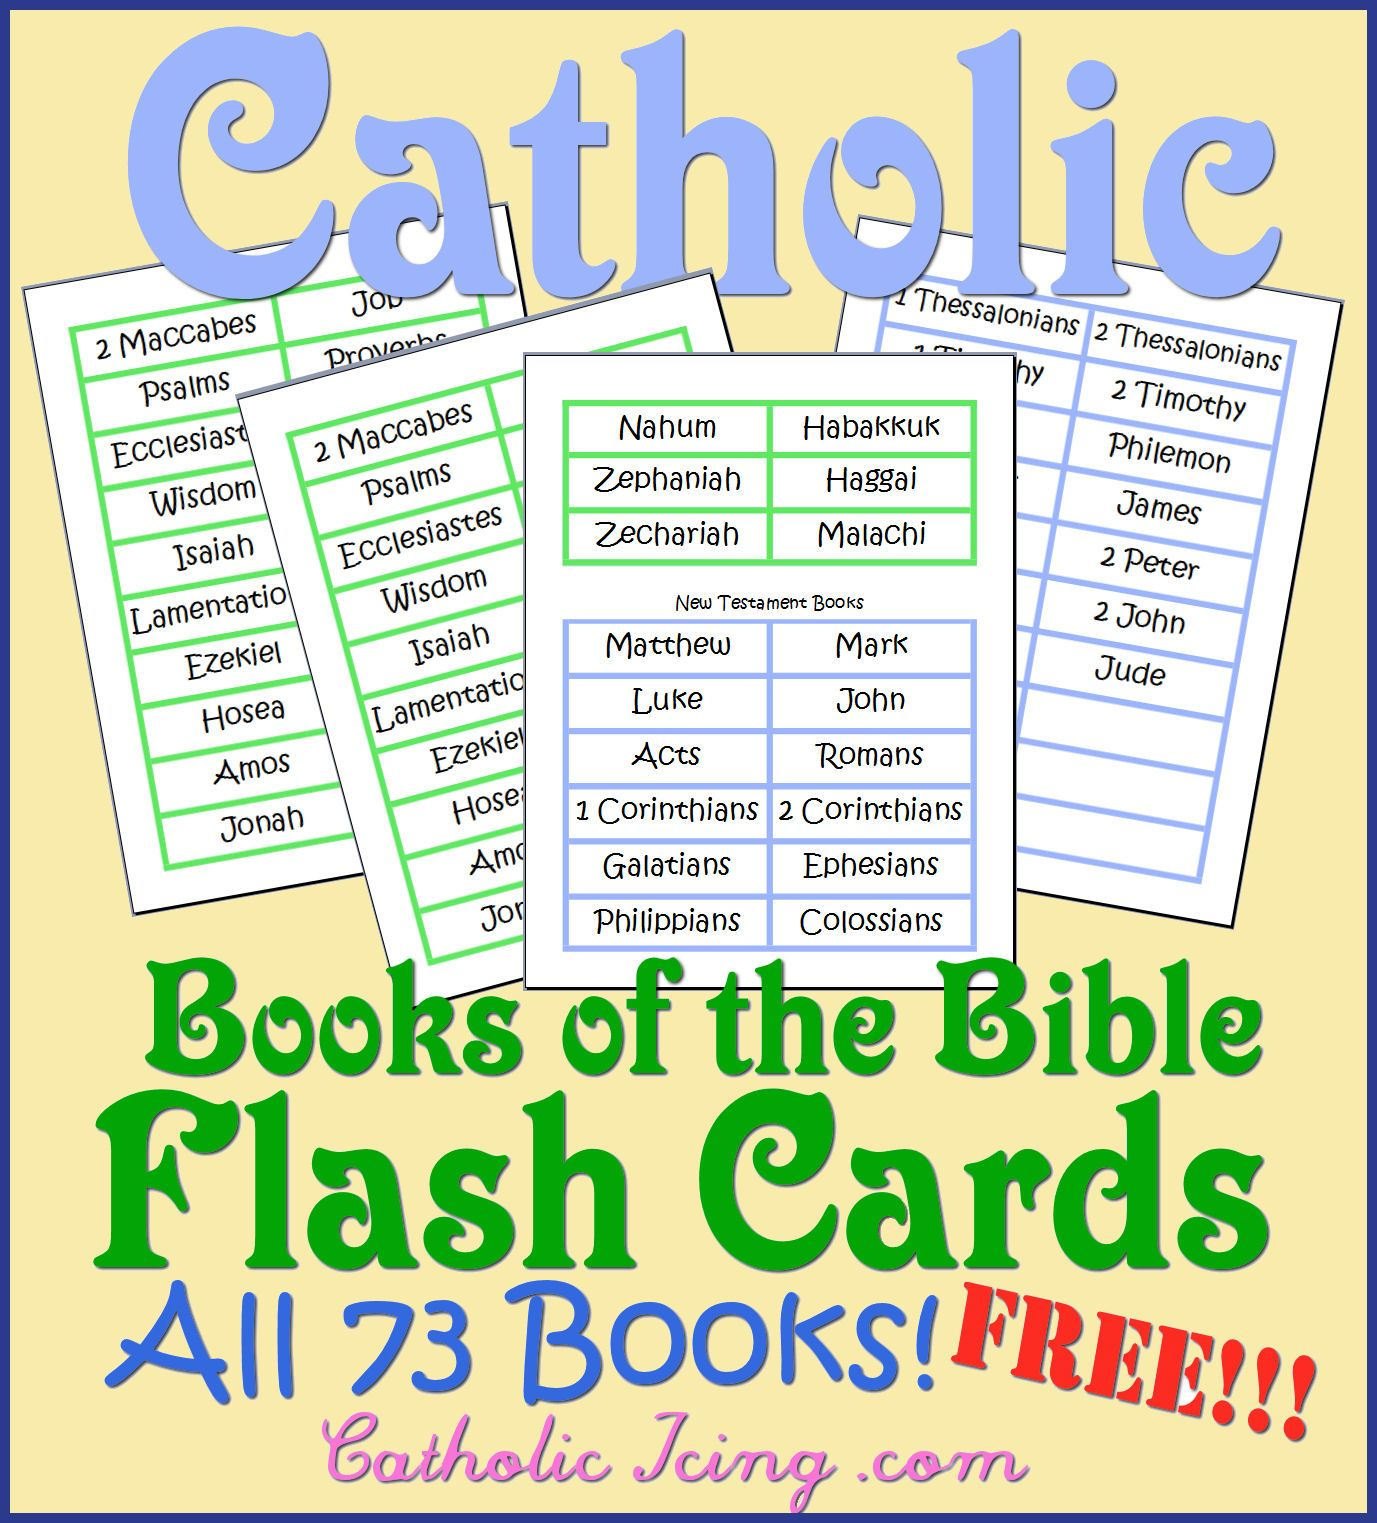 Cathoilc Books Of The Bible Flas Cards All 73 Books Free